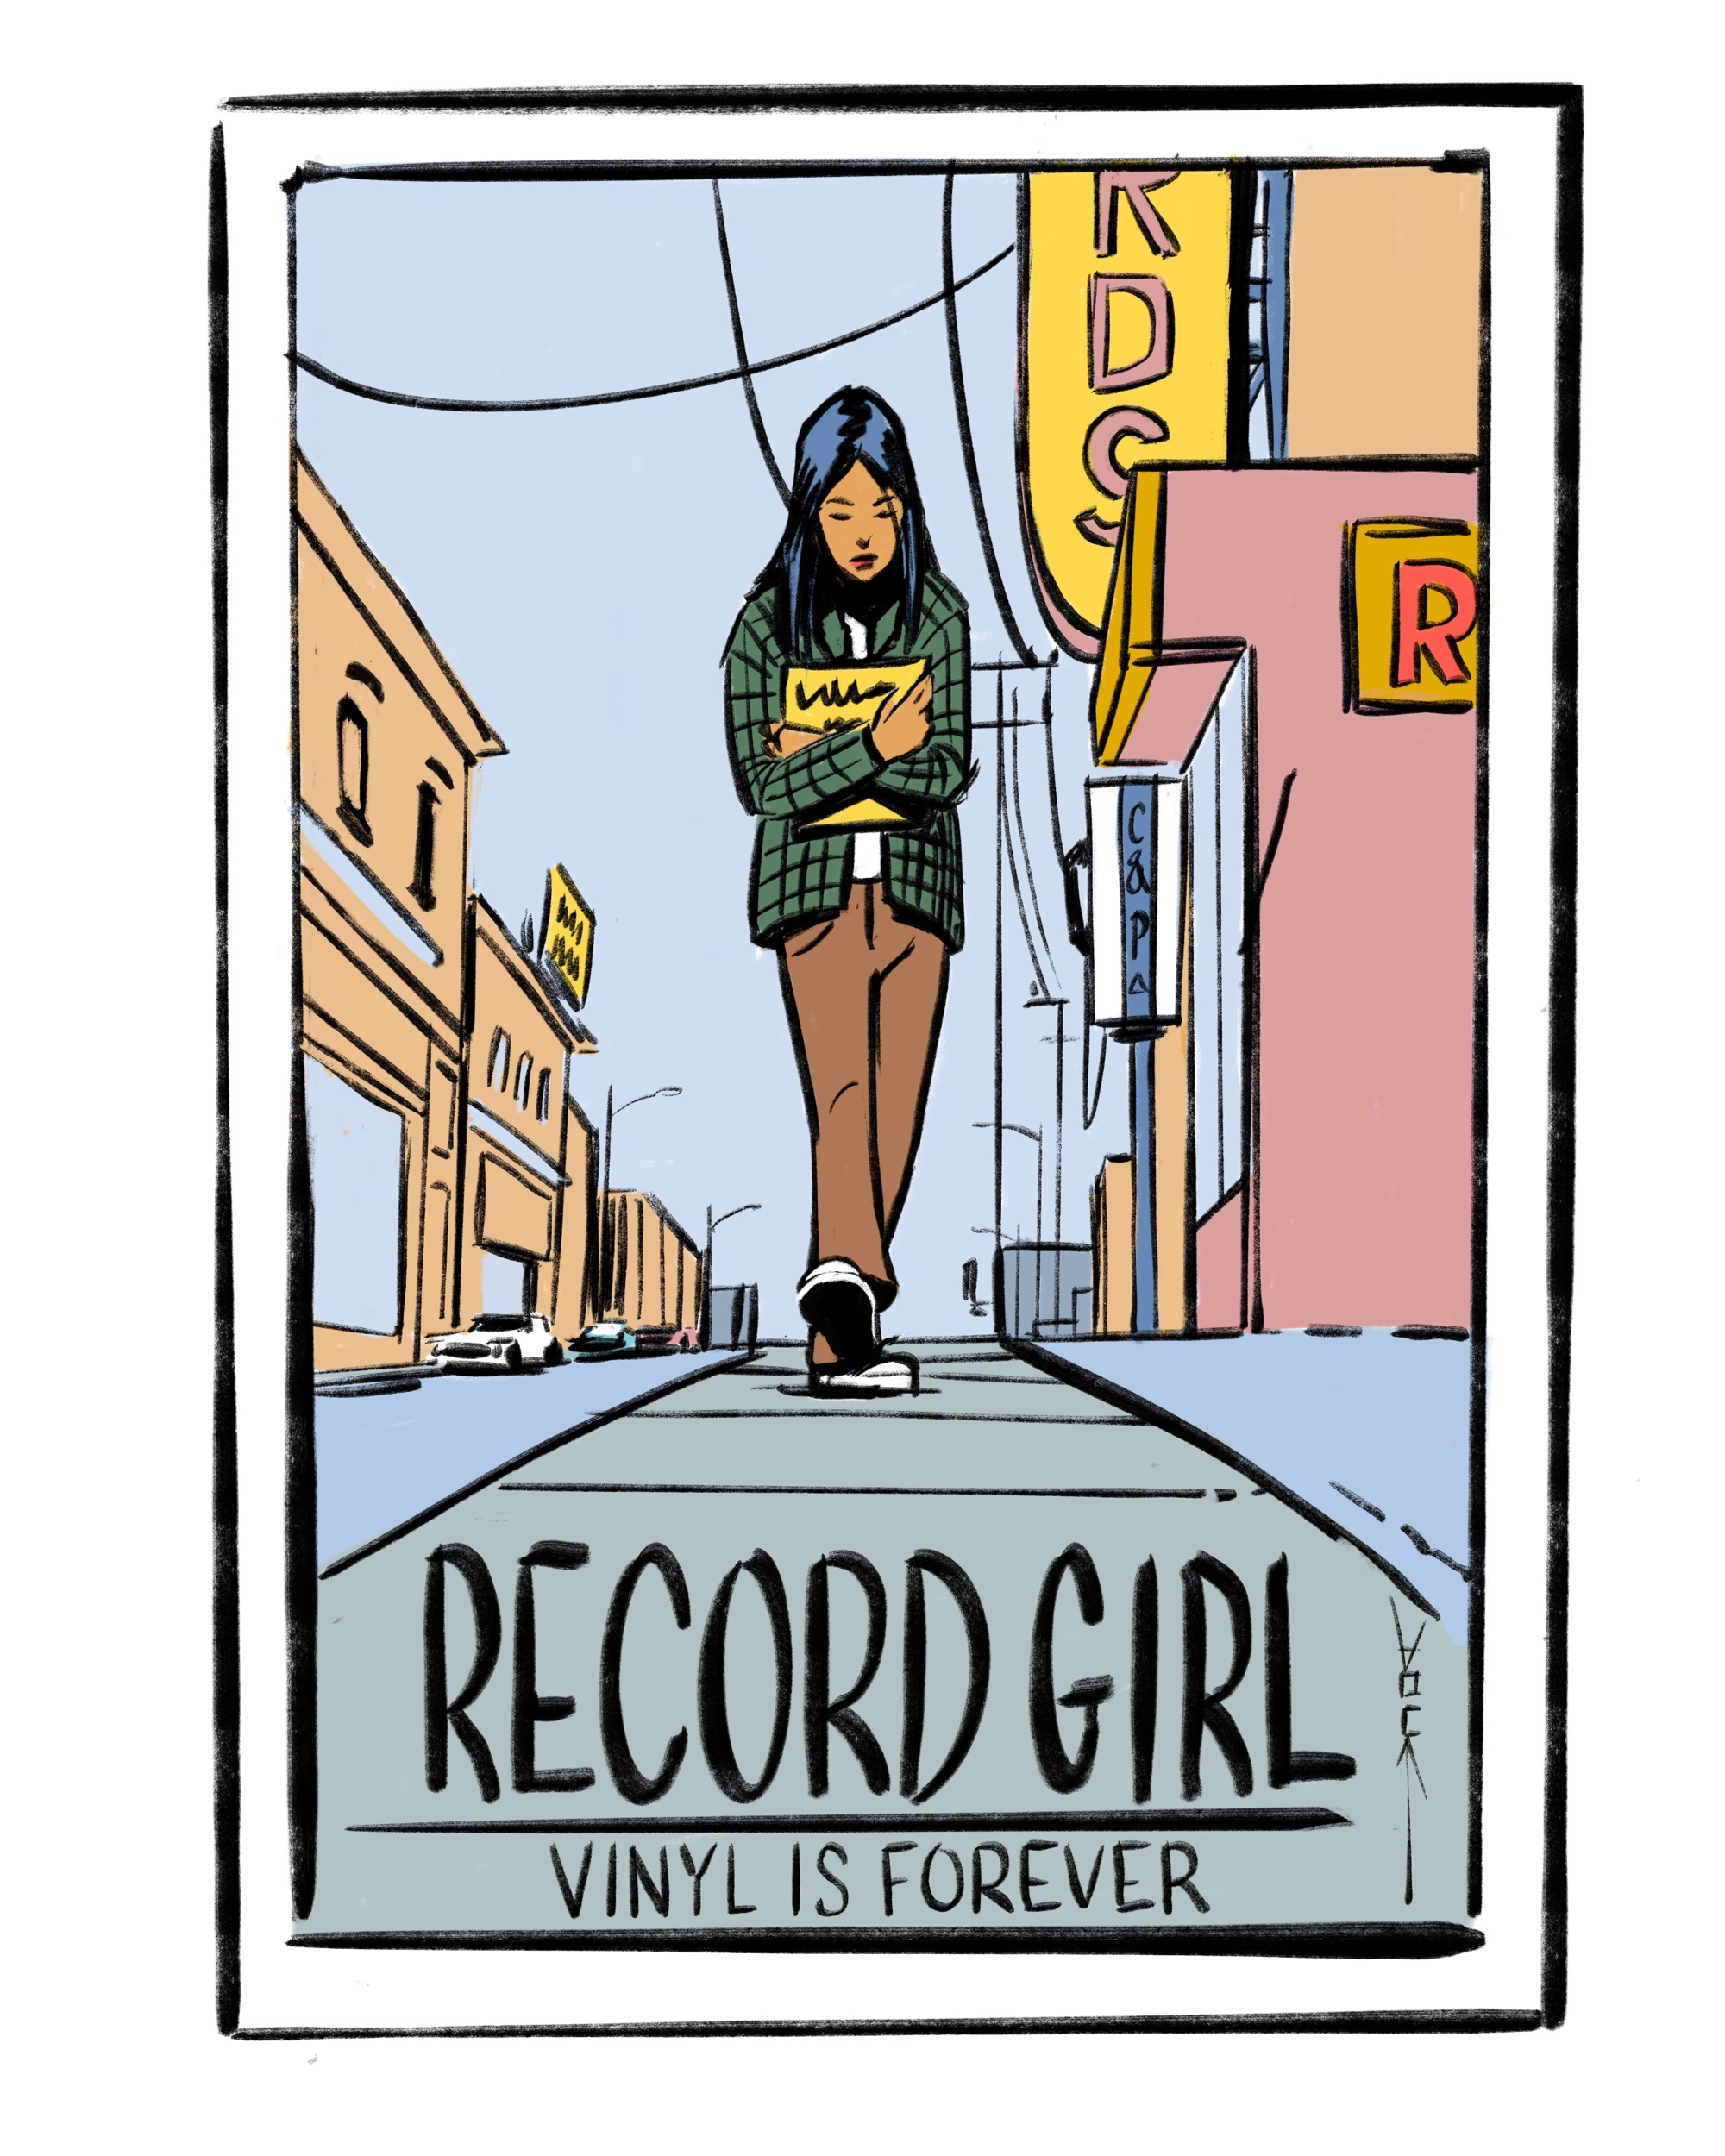 RECORD GIRL COVER - VINYL IS FOREVER